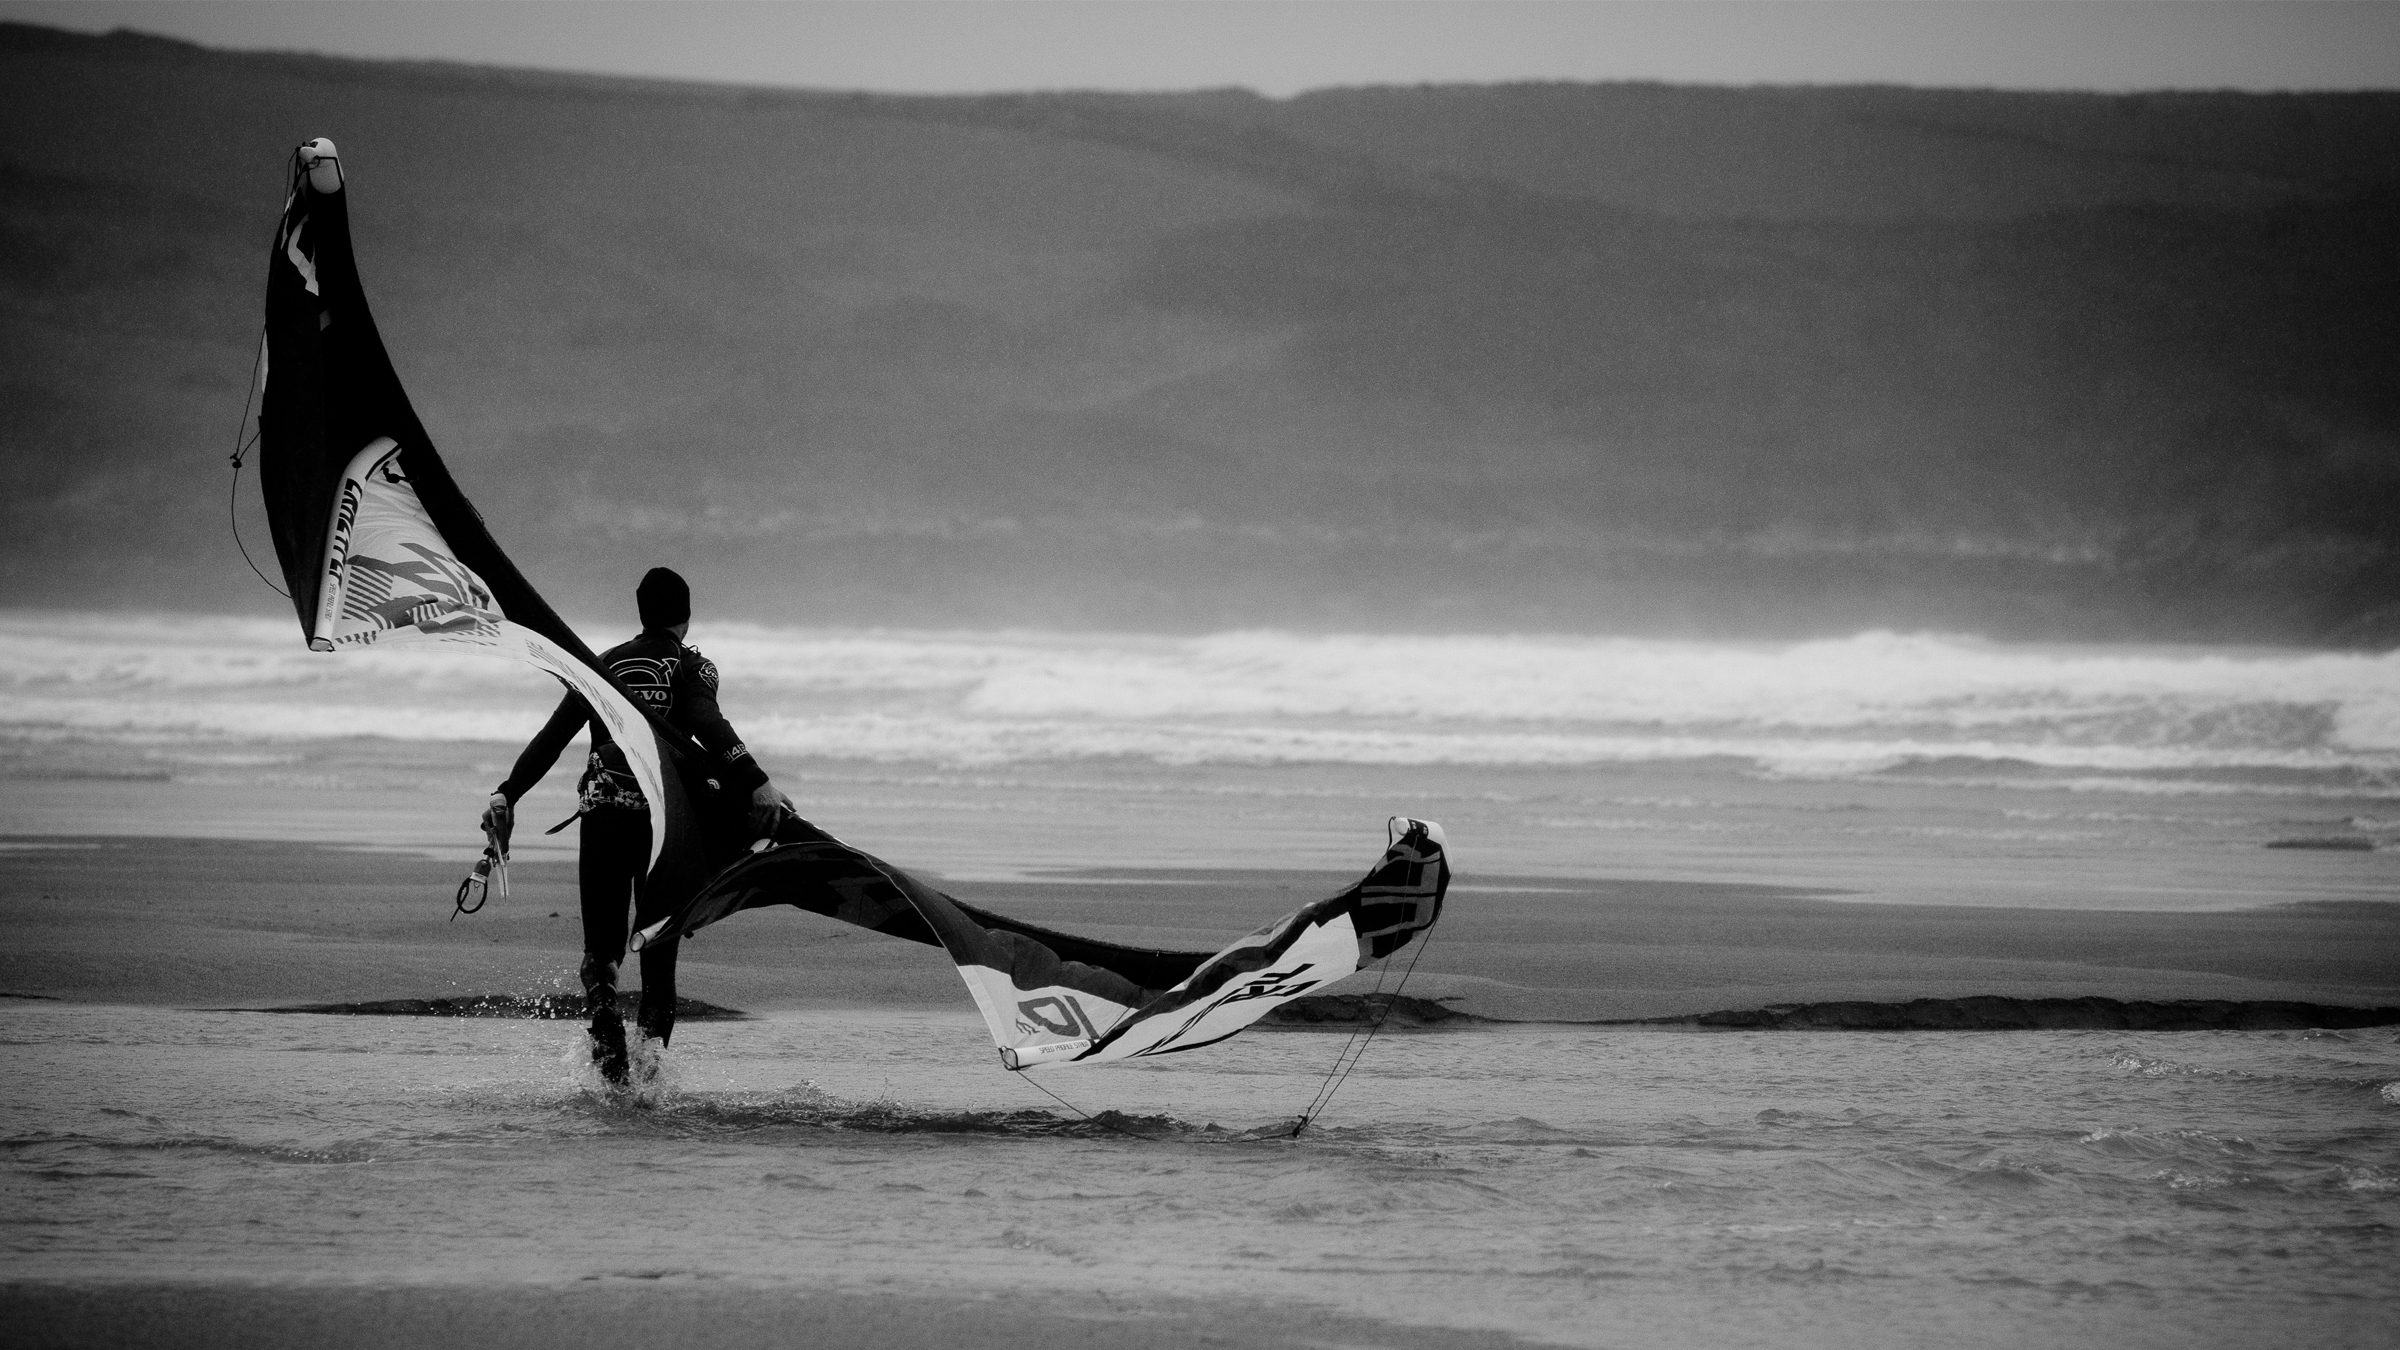 kitesurf wallpaper image - Kitesurfer walking on the beach with his kite. - in resolution: High Definition - HD 16:9 2400 X 1350